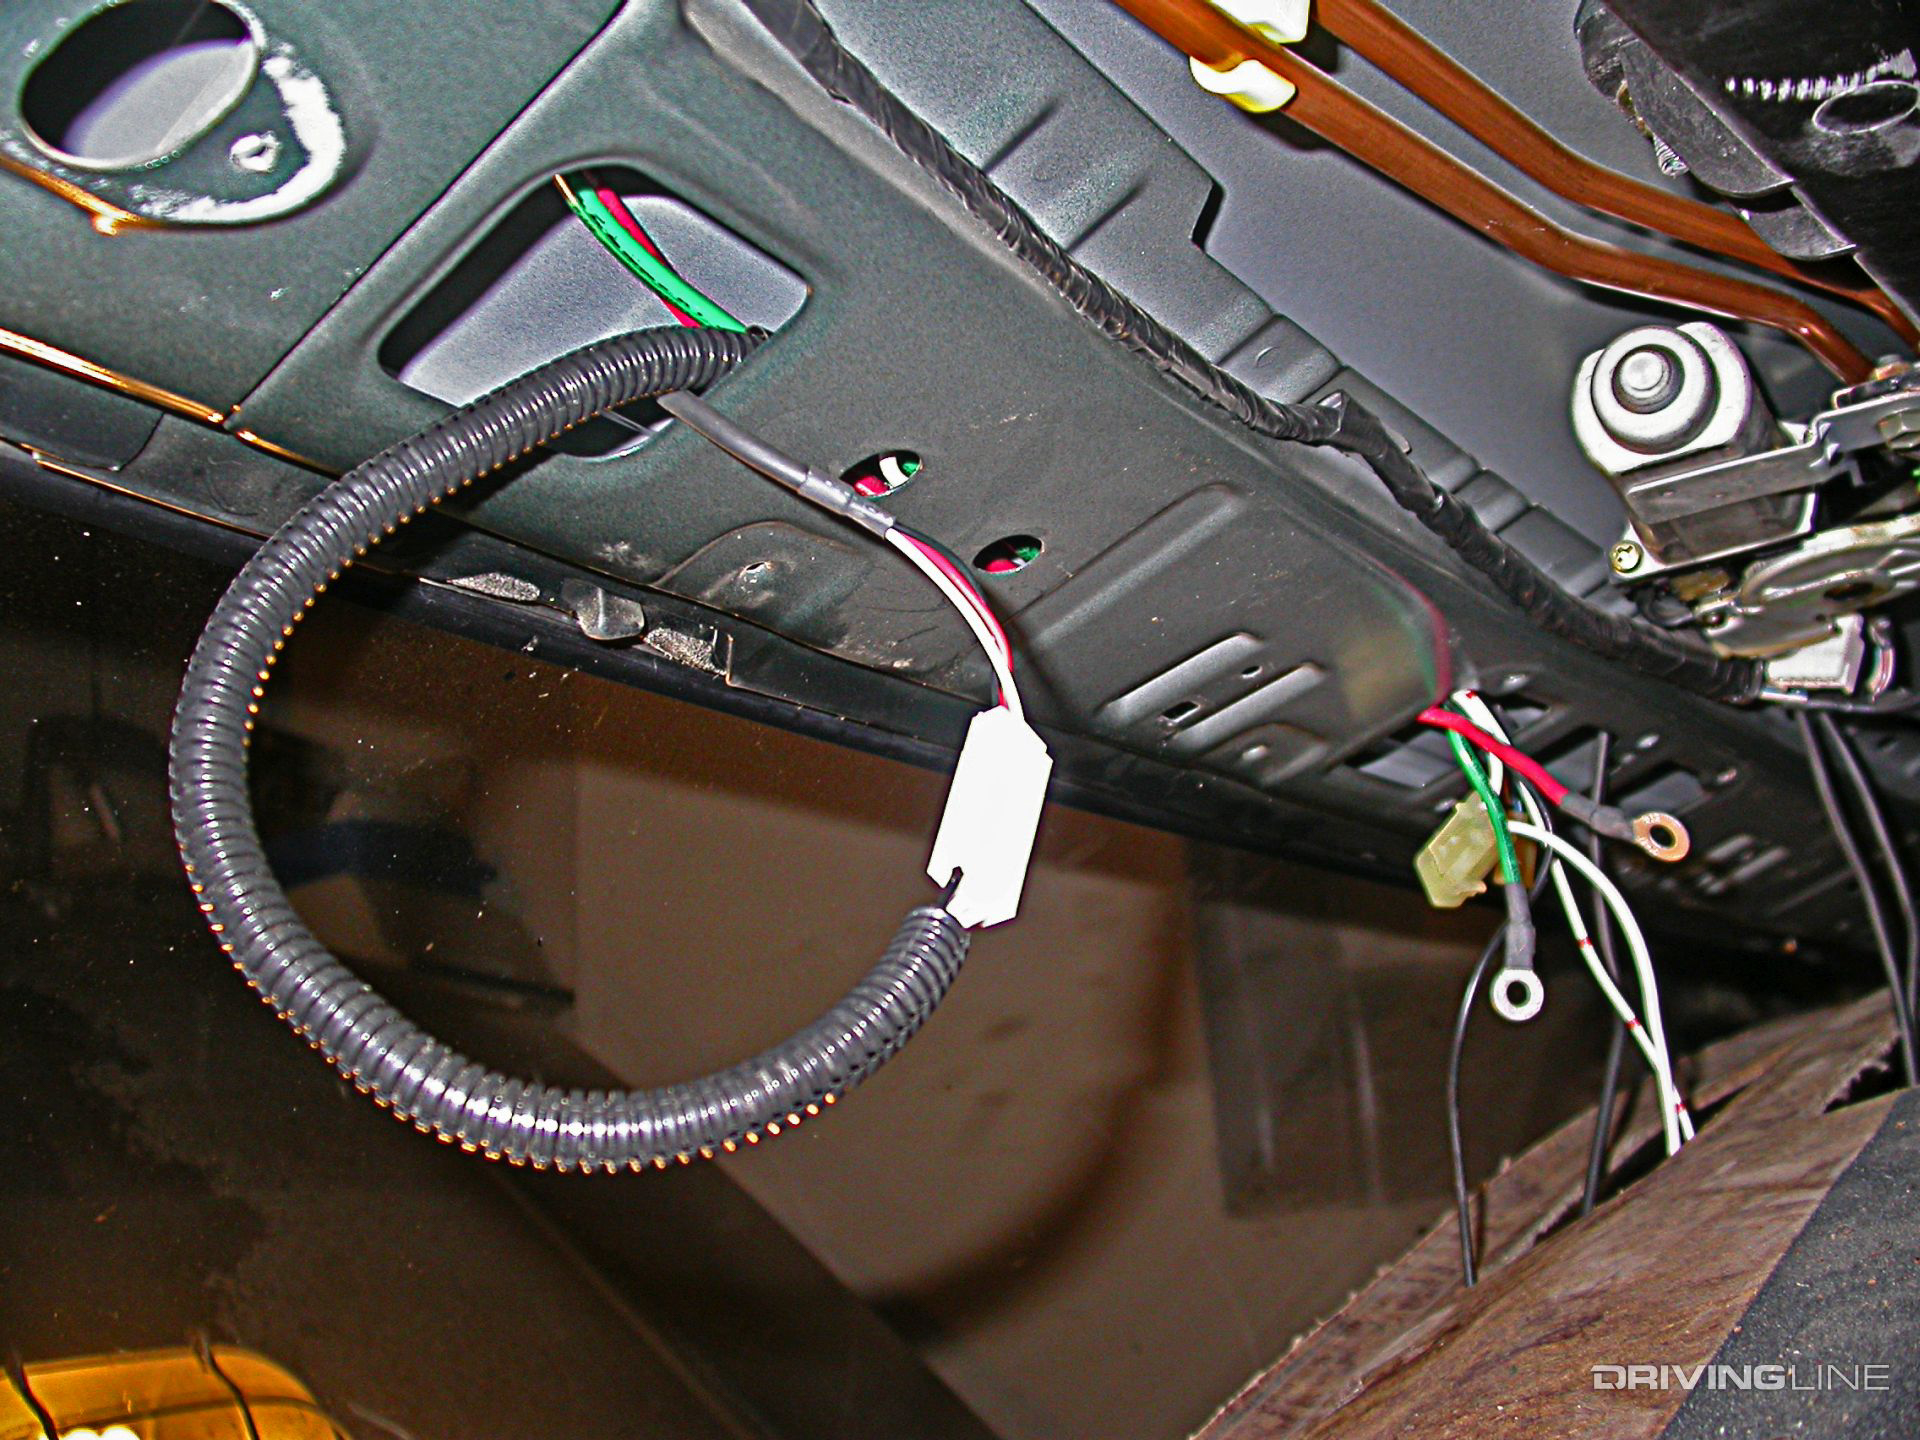 011 piaa_led_4runner_wiring_header_harness piaa low profile led lighting drivingline Chevy Wiring Harness at suagrazia.org